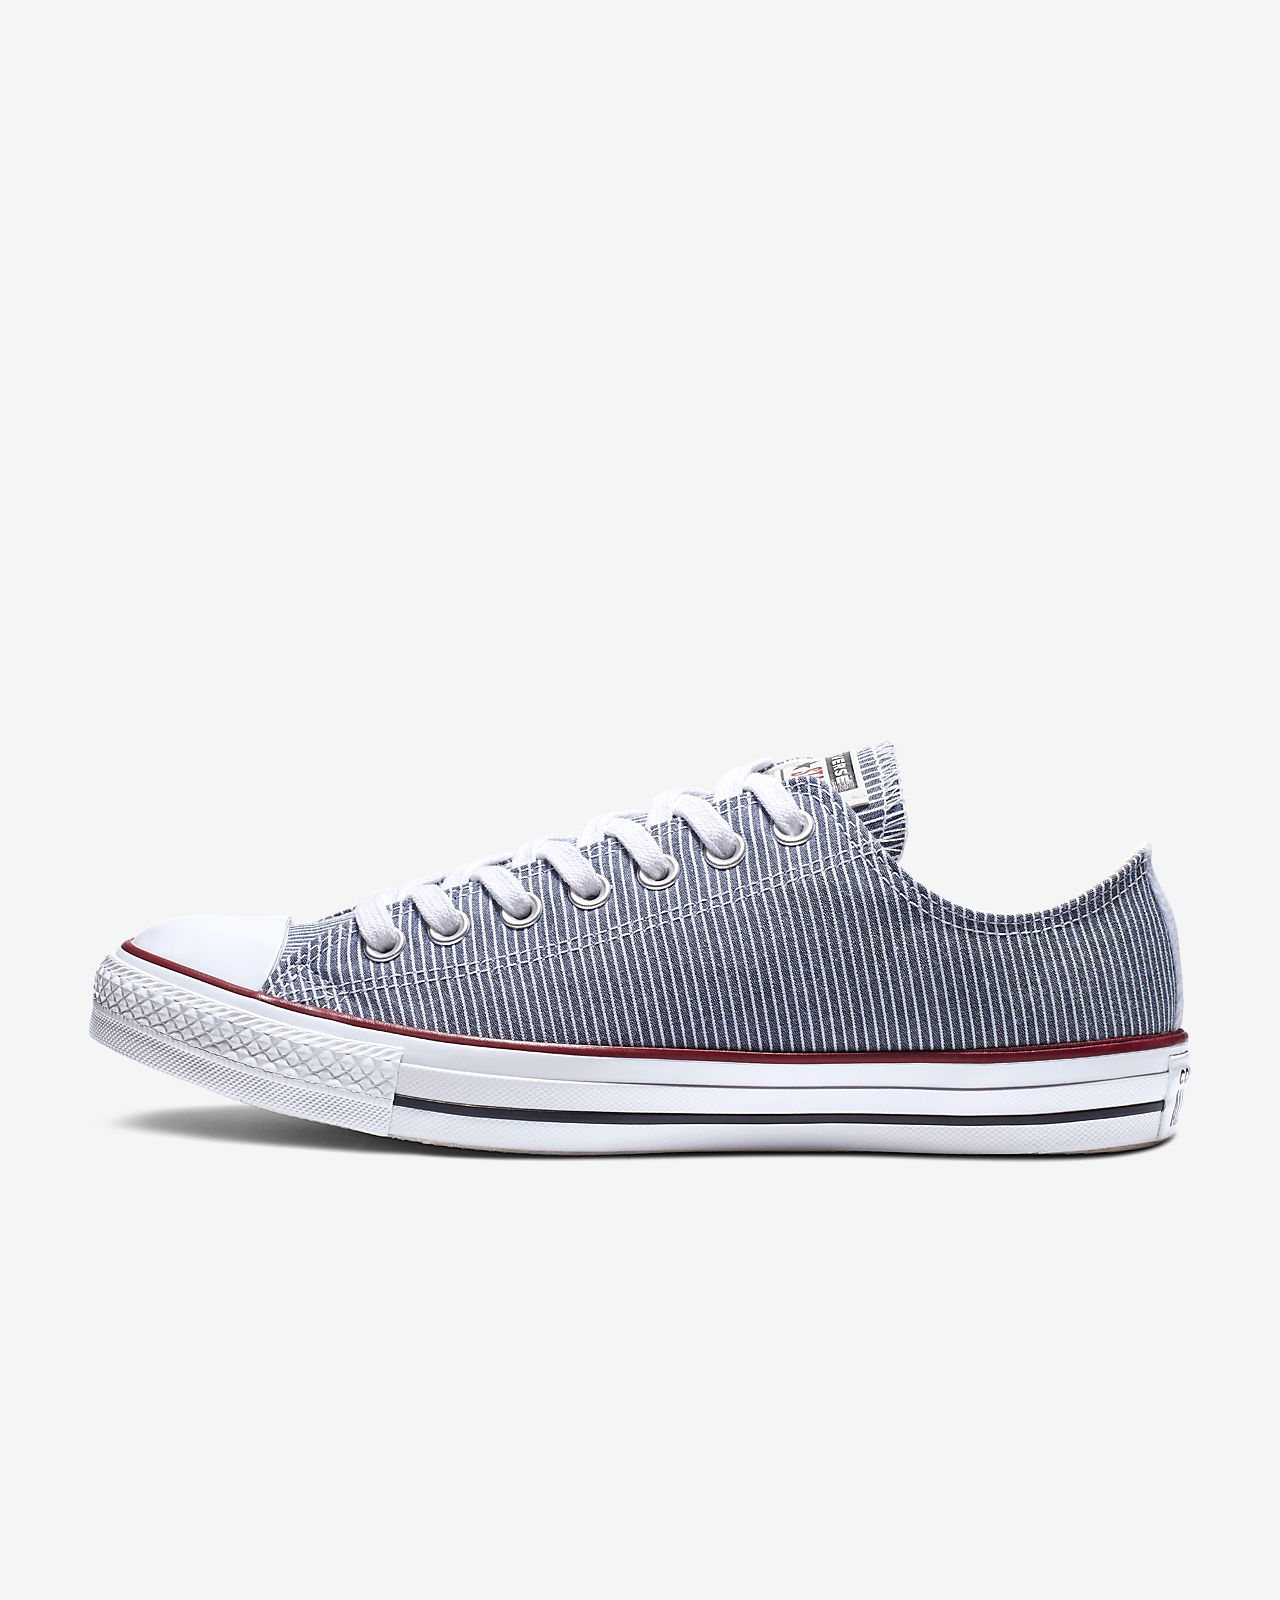 Chuck Taylor All Star Stripes Low Top Unisex Shoe